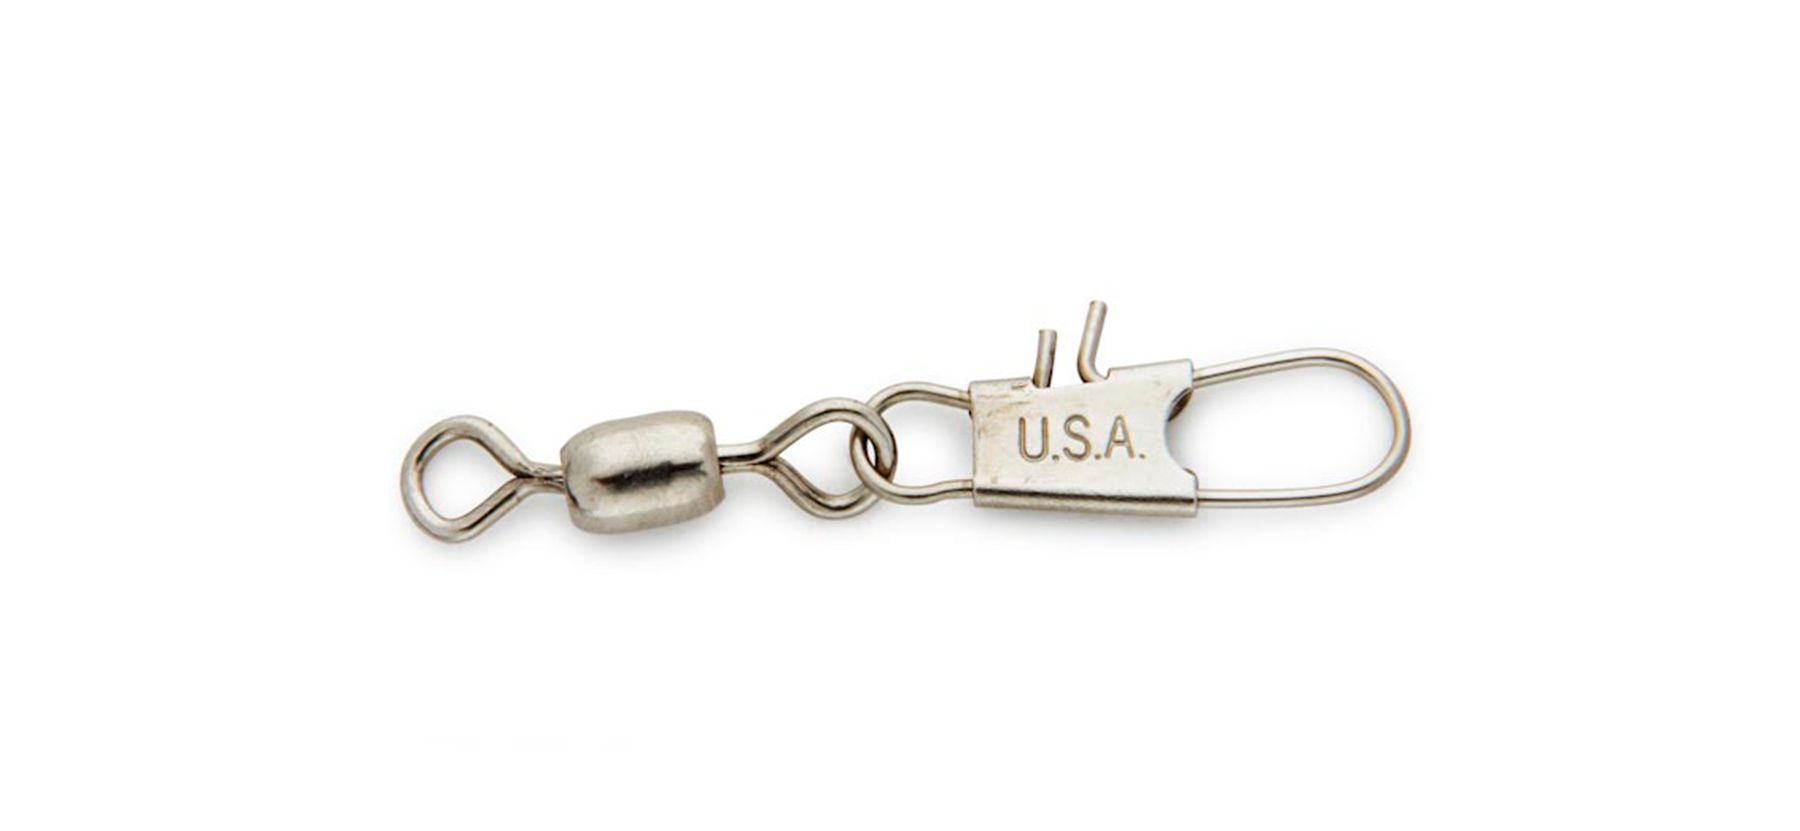 Nickel Interlock Snap Swivel -